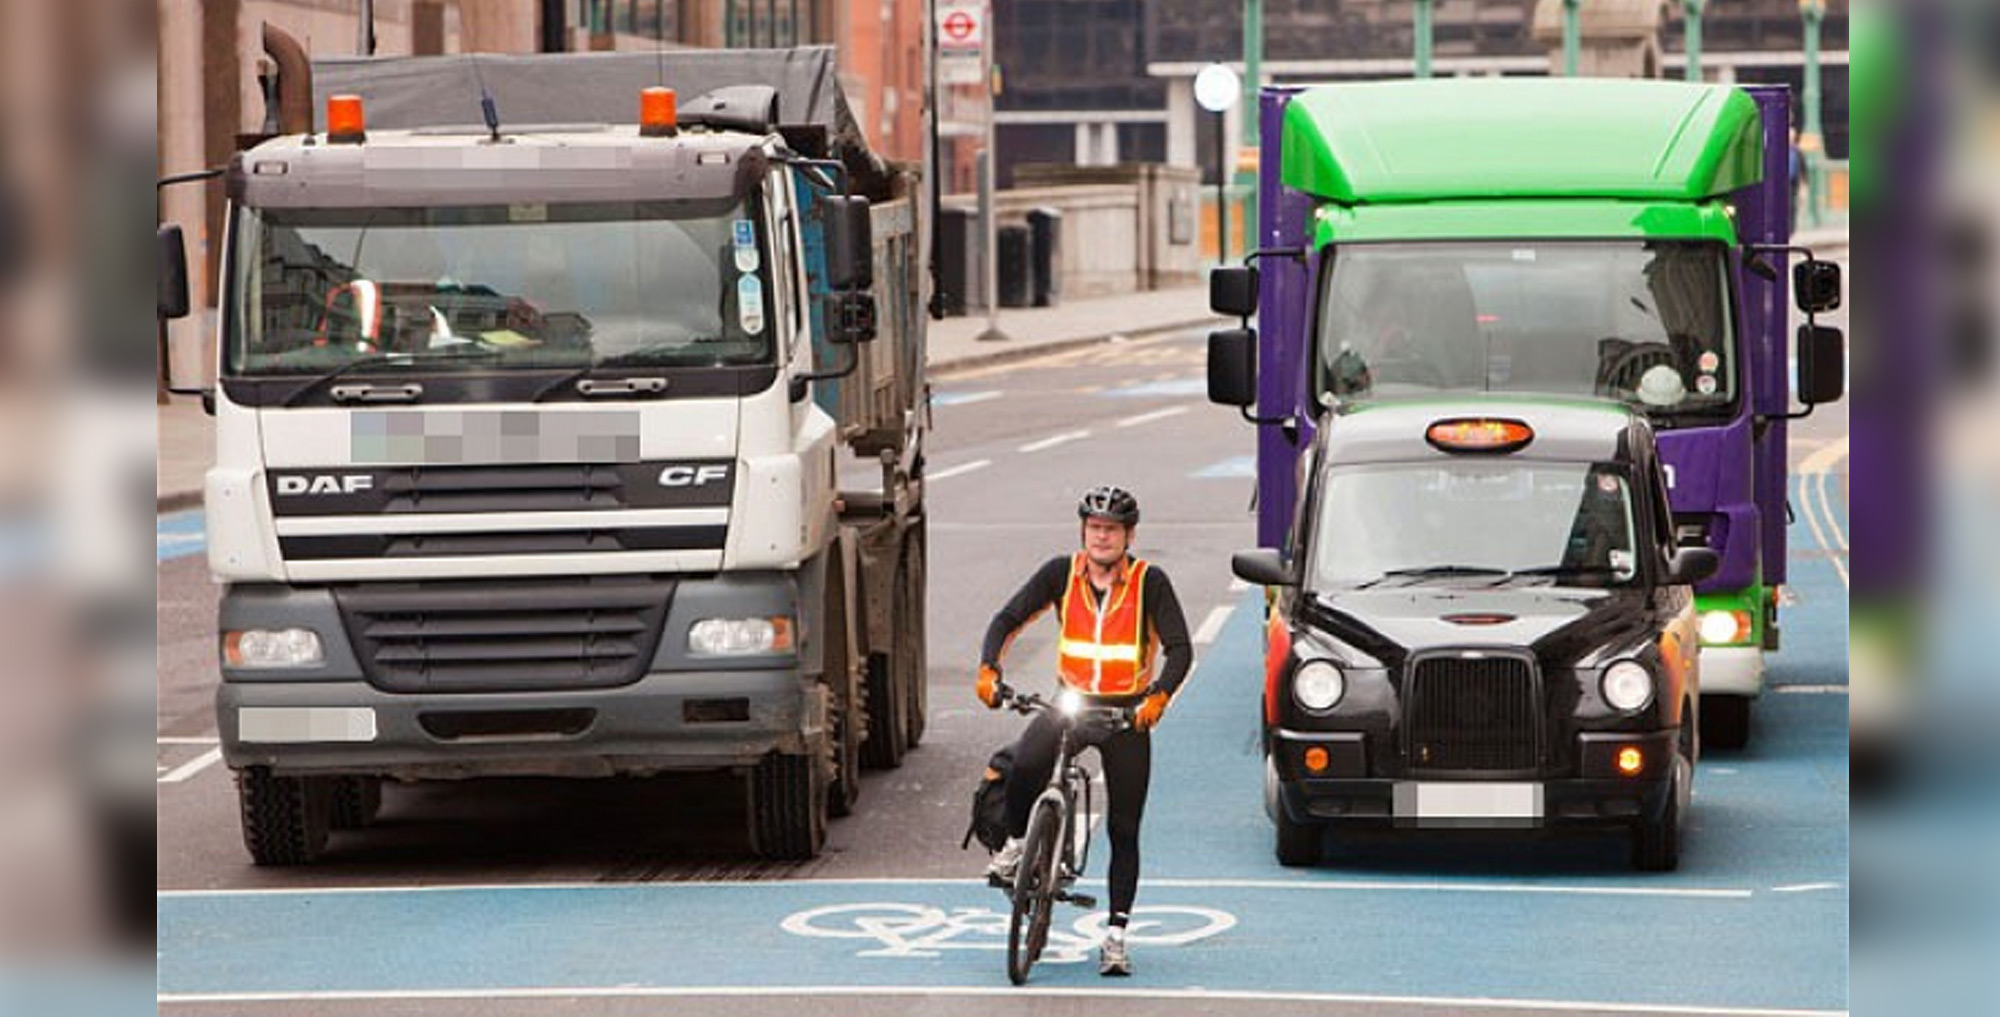 cyclist, taxi and lorries waiting at traffic lights